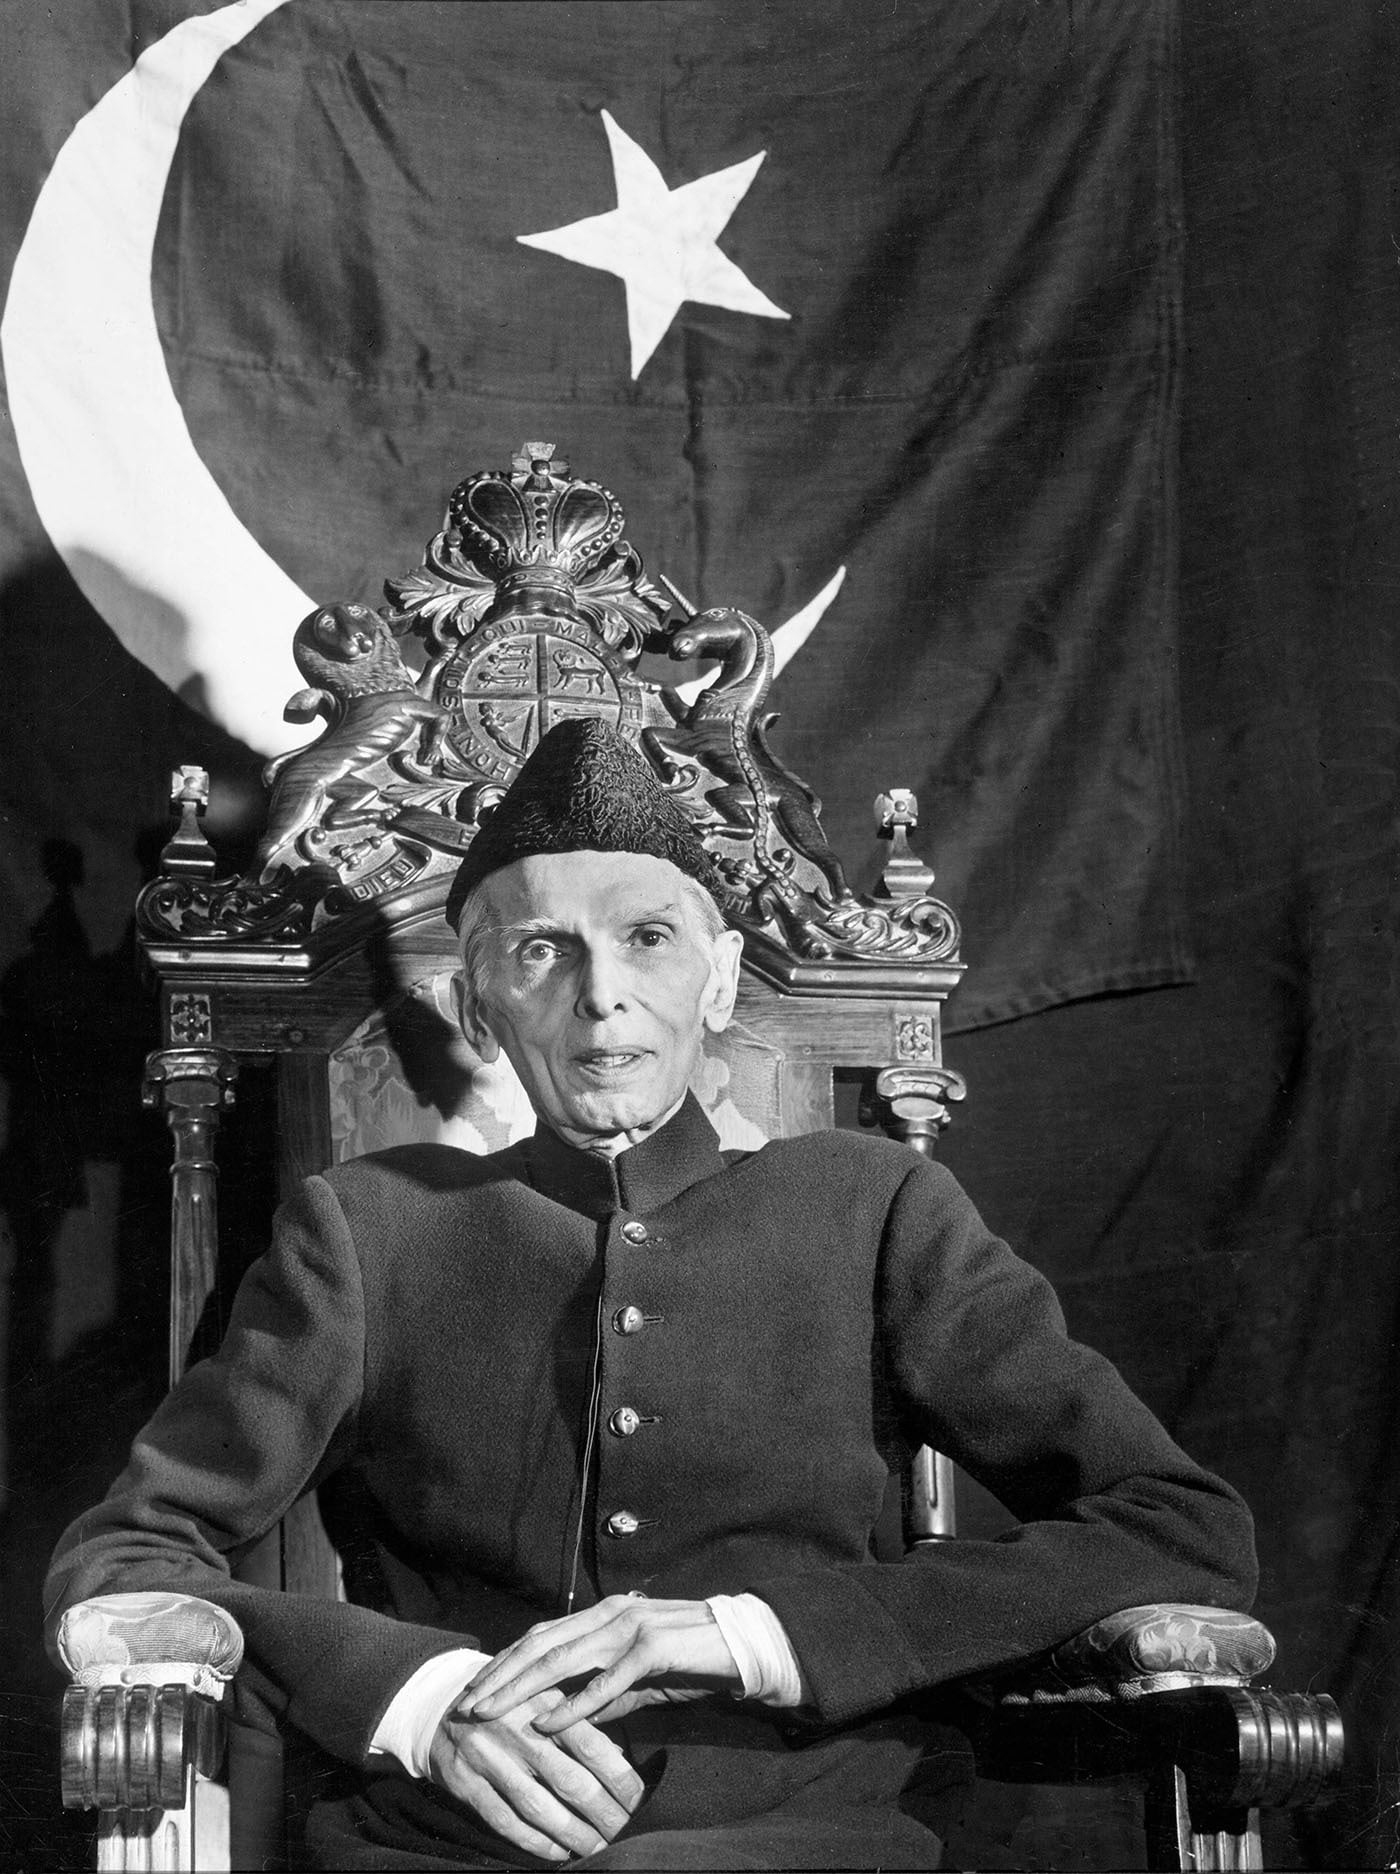 Quaid-i-Azam Mohammad Ali Jinnah is seated with the Pakistan flag draped behind him in Karachi in December 1947. — Excerpted with permission from Witness to Life and Freedom, Roli Books, Delhi